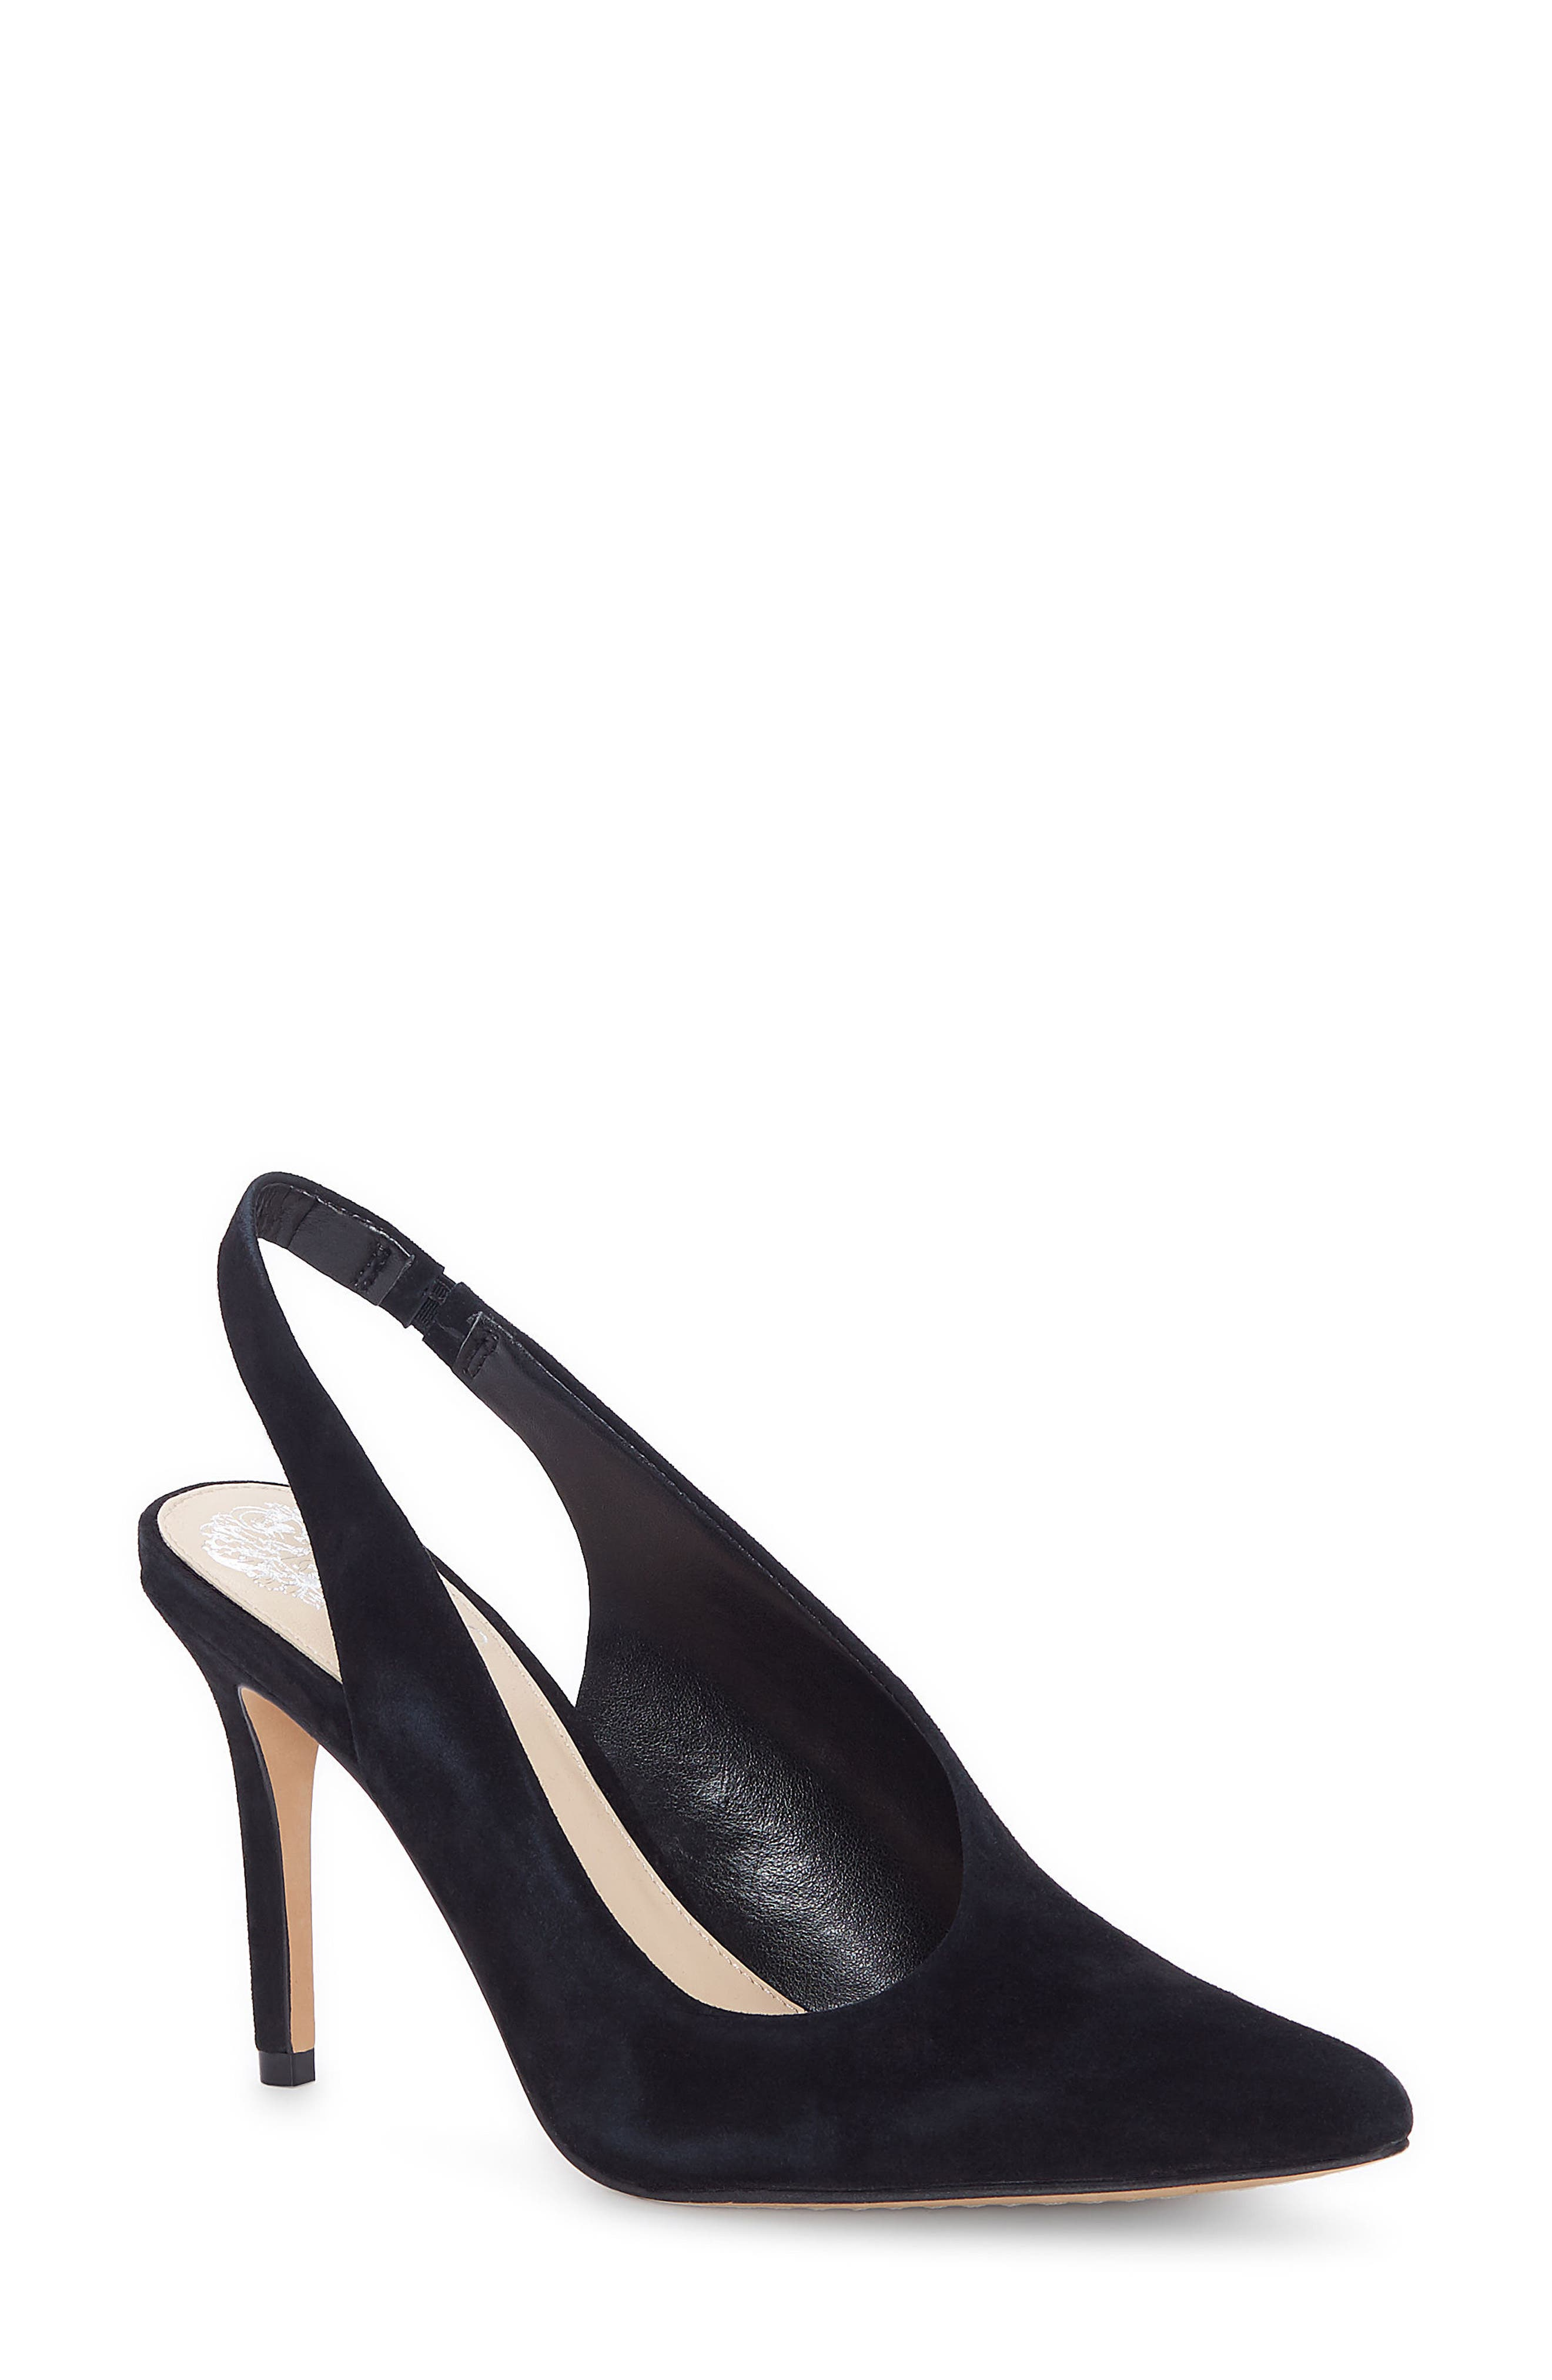 VINCE CAMUTO Ampereta Pump, Main, color, 001